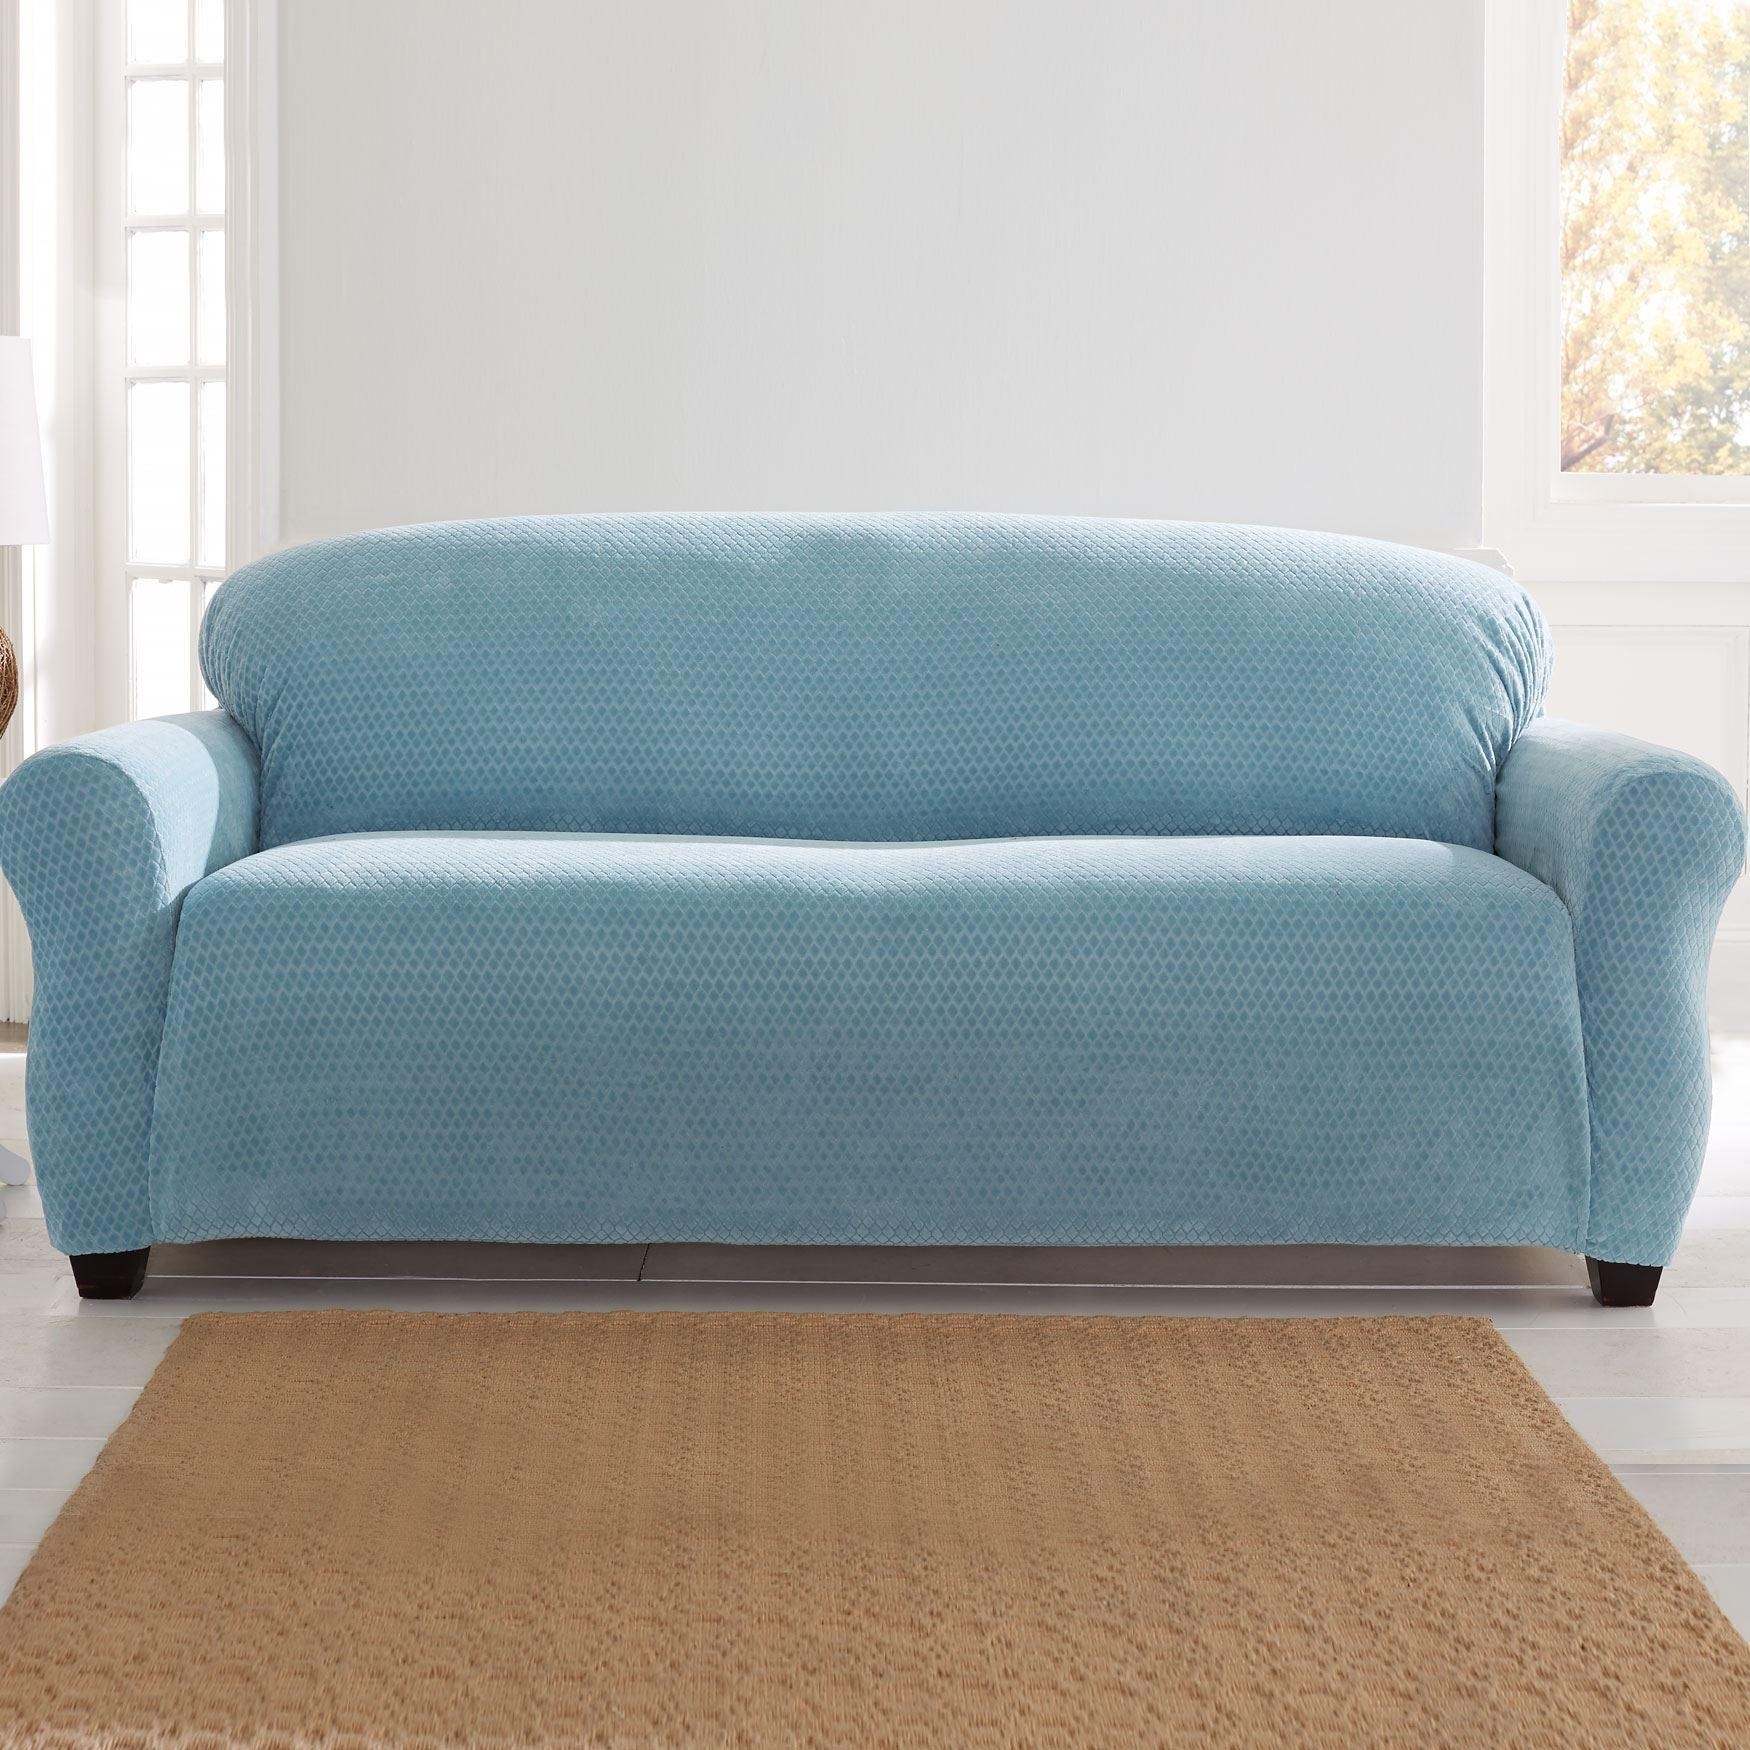 Brylanehome® Studio Stretch Diamond Extra Long Sofa Slipcover With Regard To Turquoise Sofa Covers (Image 3 of 20)